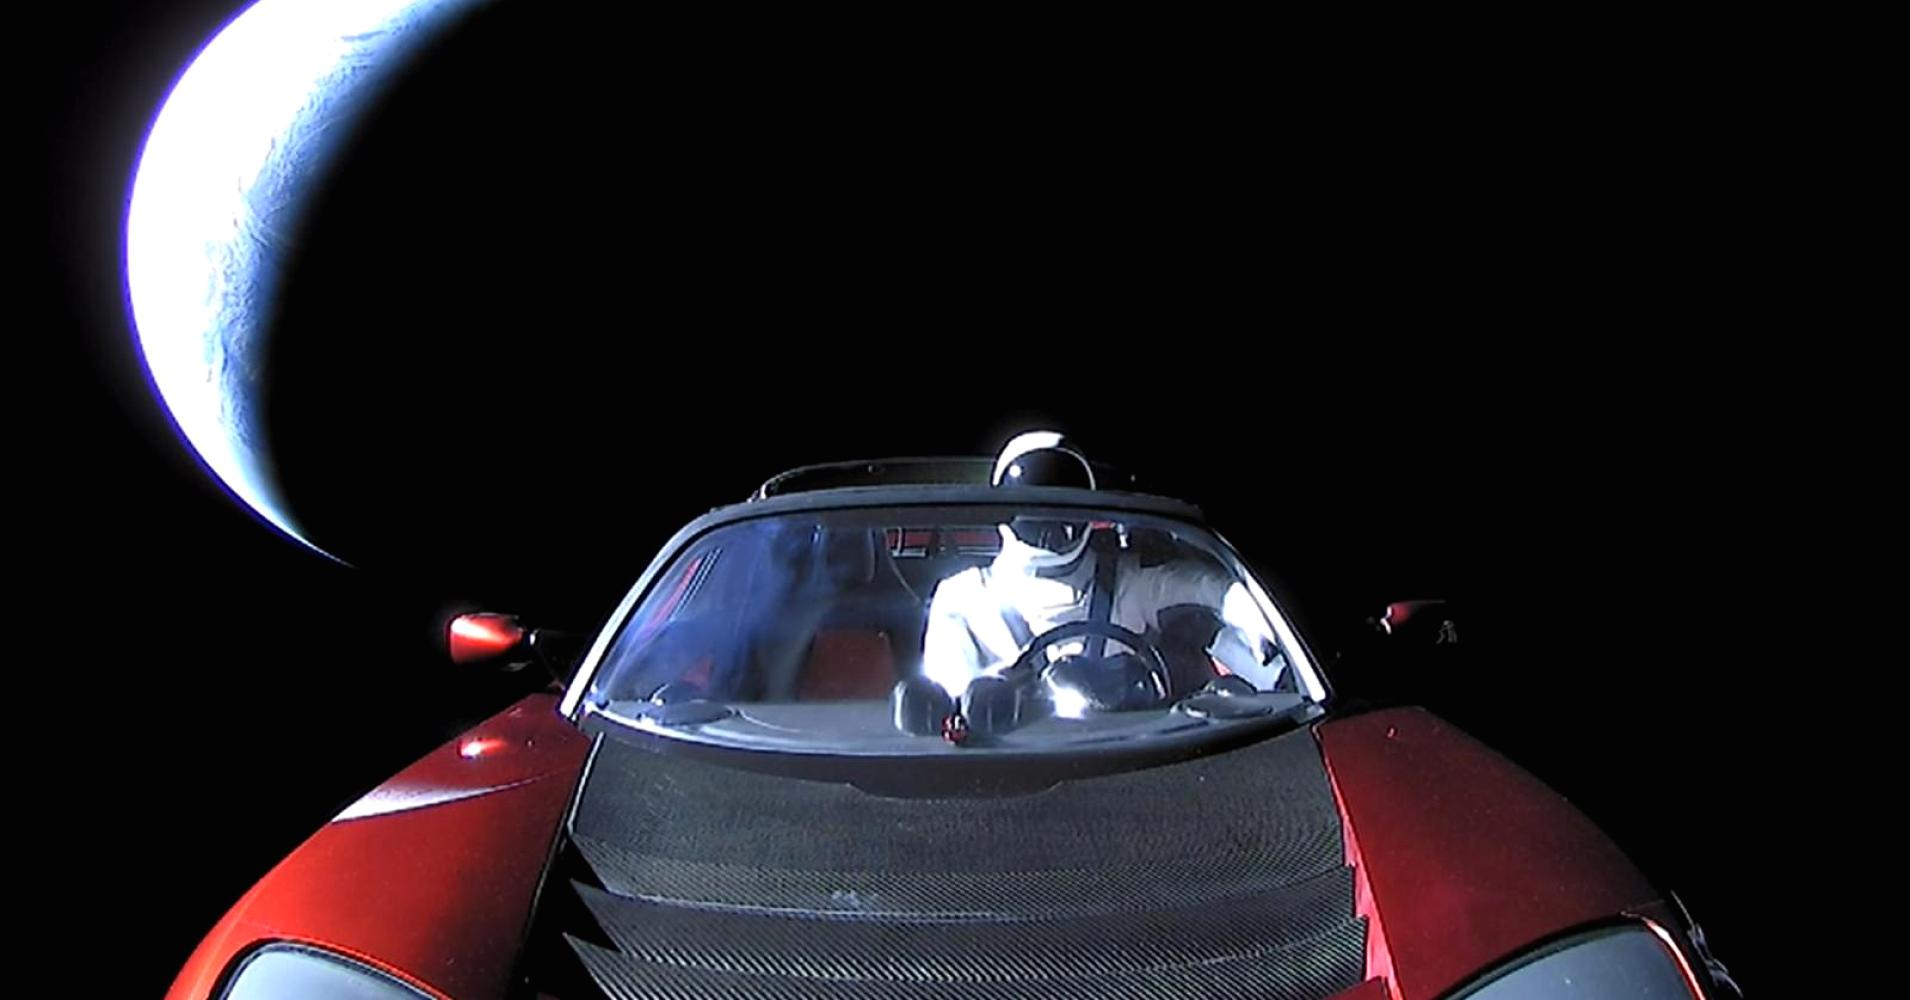 Tesla Roadster leaving Earth